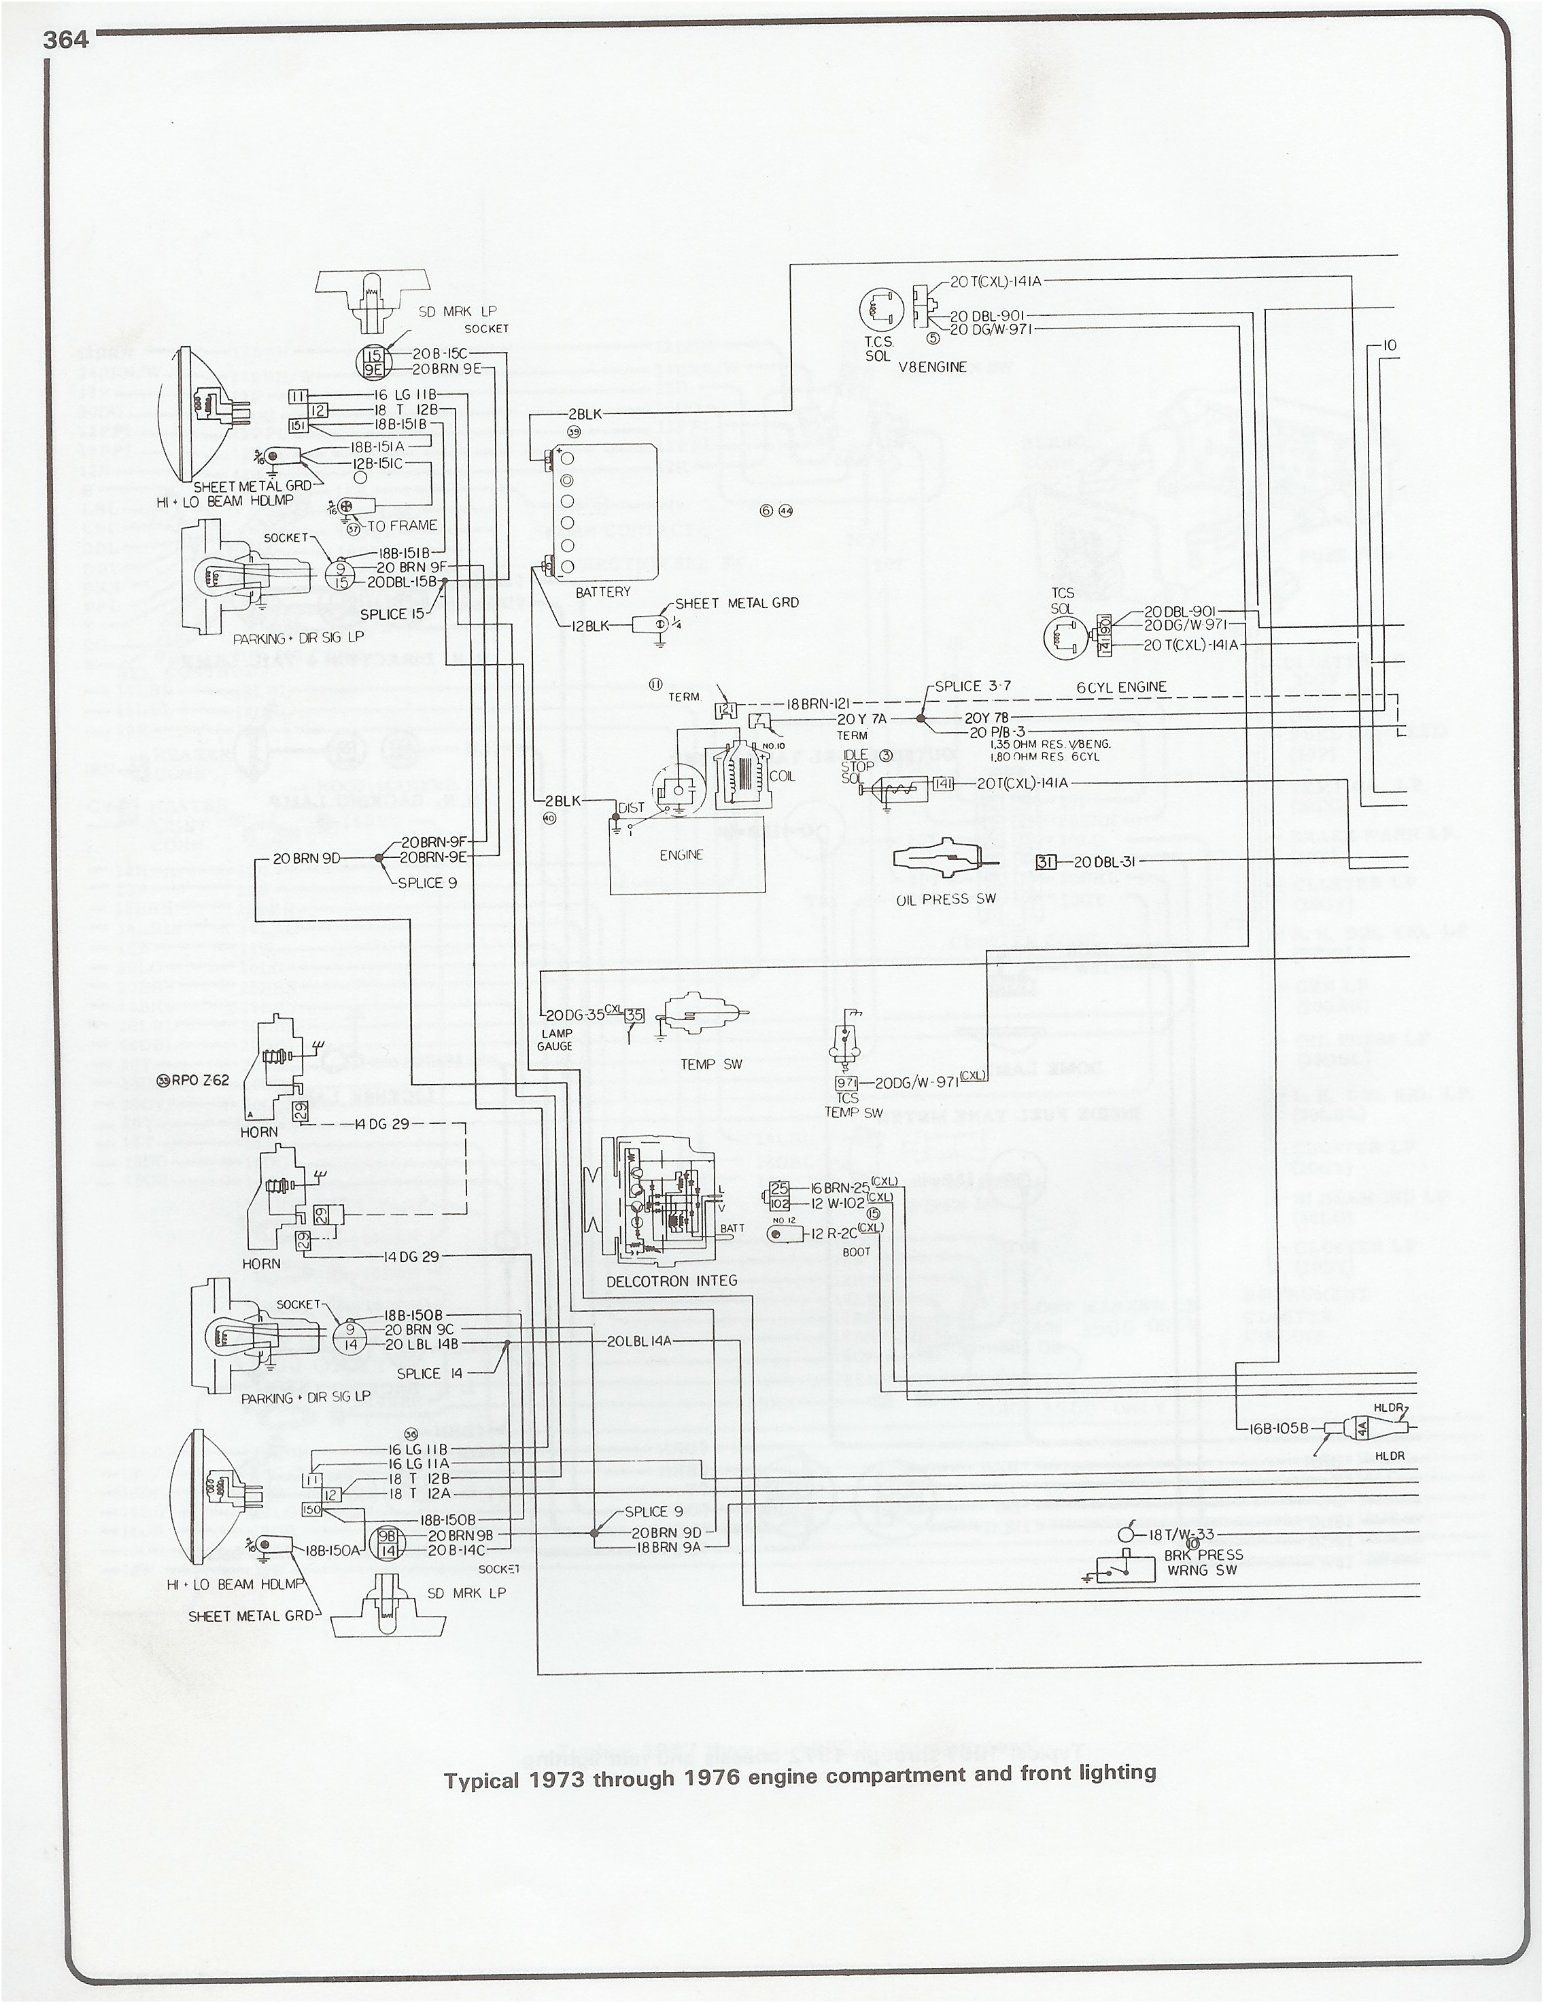 cbf1f 1973 fiat automotive wiring diagrams | wiring library  wiring library